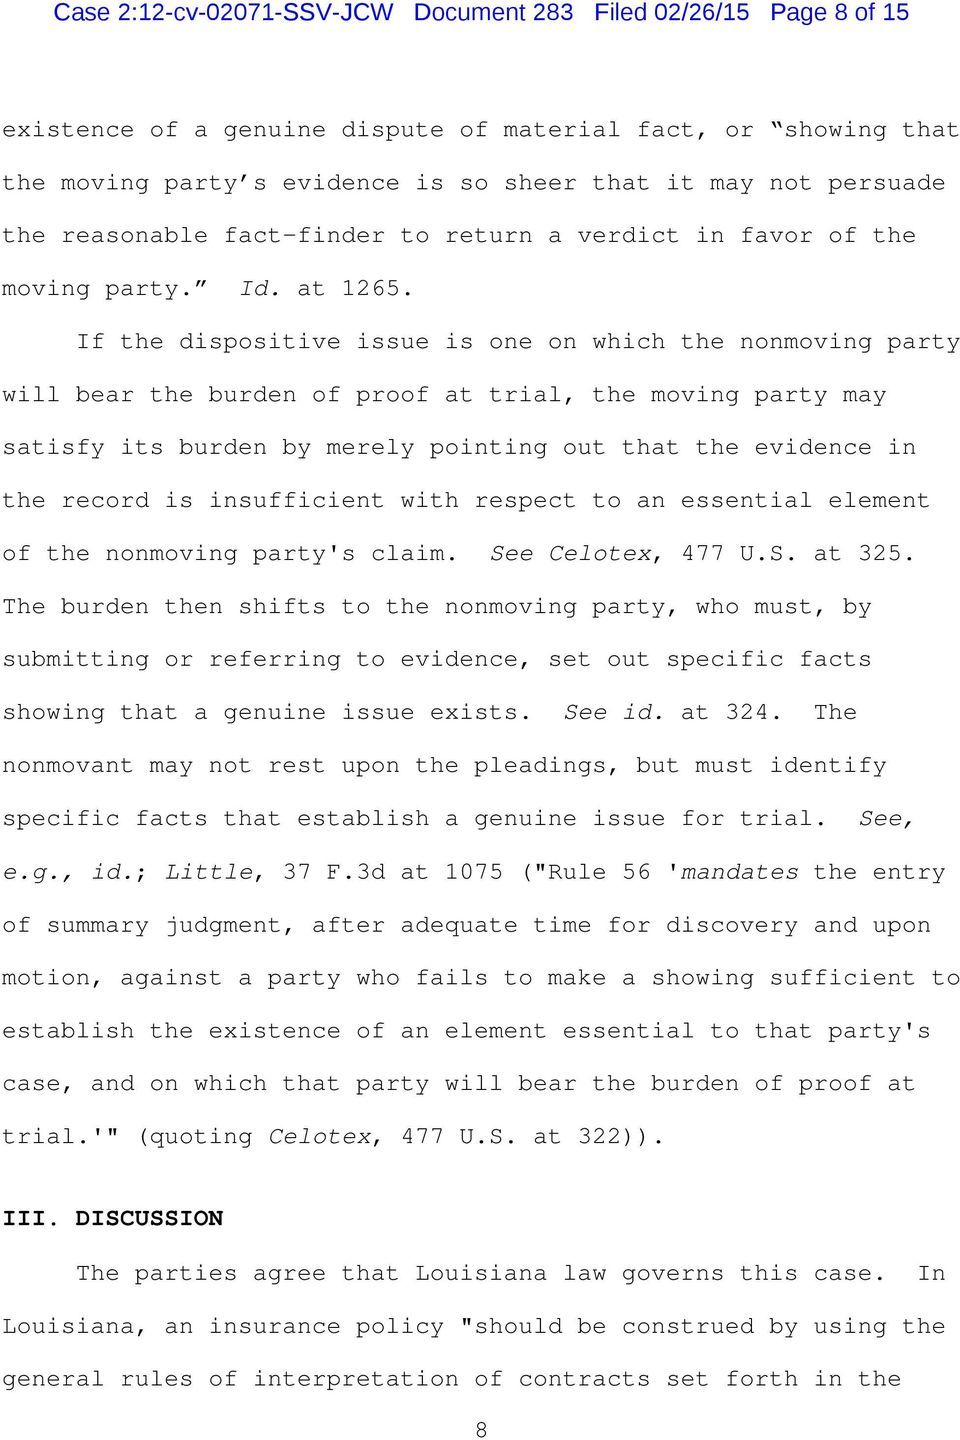 If the dispositive issue is one on which the nonmoving party will bear the burden of proof at trial, the moving party may satisfy its burden by merely pointing out that the evidence in the record is